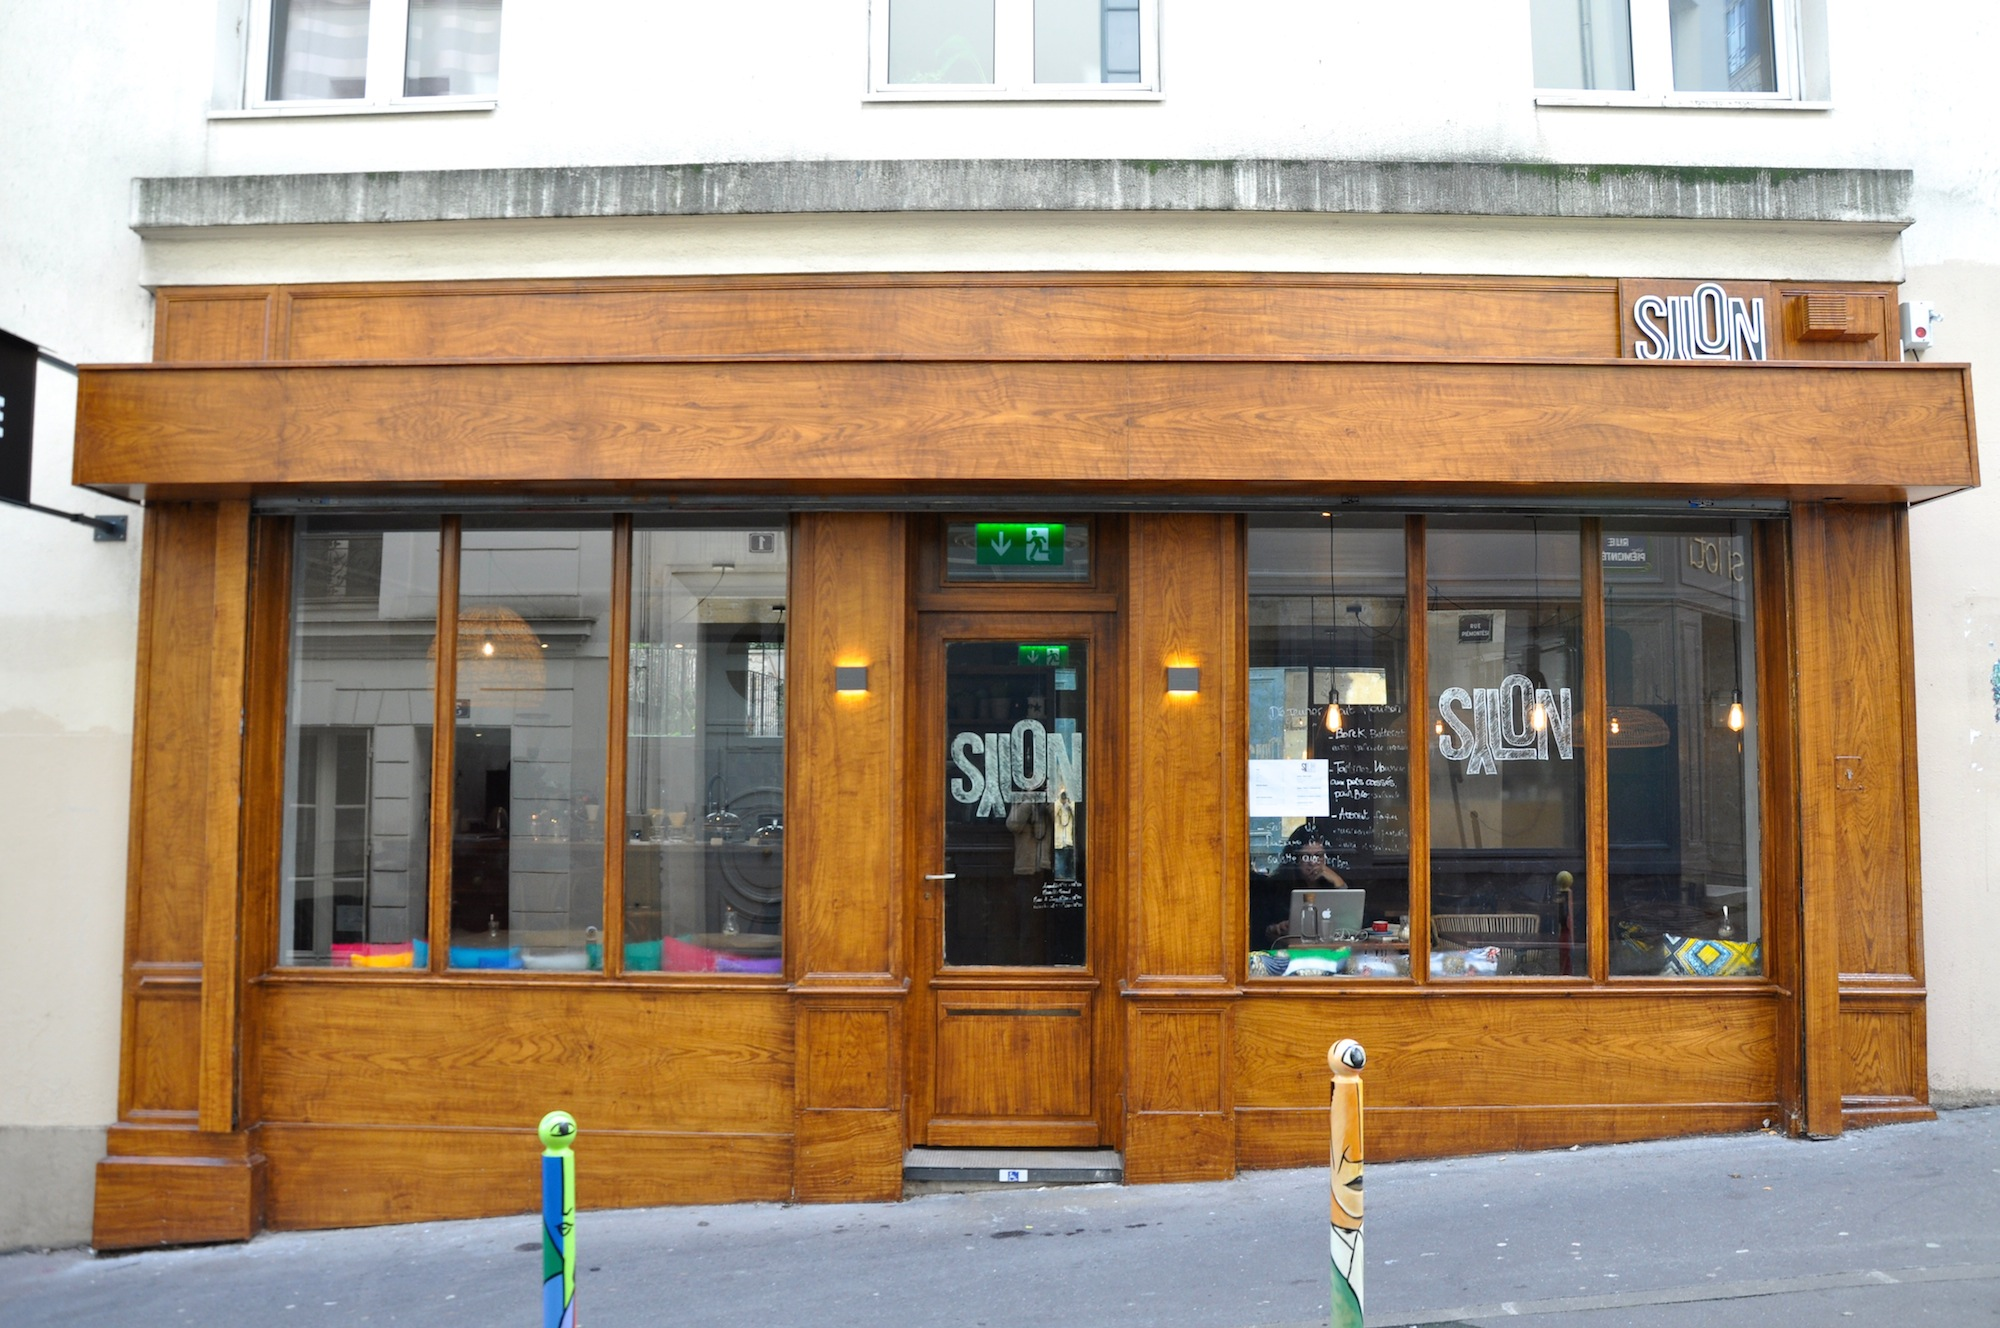 The best new places to eat in Paris' Montmartre, like SyLon with its wooden shop front.